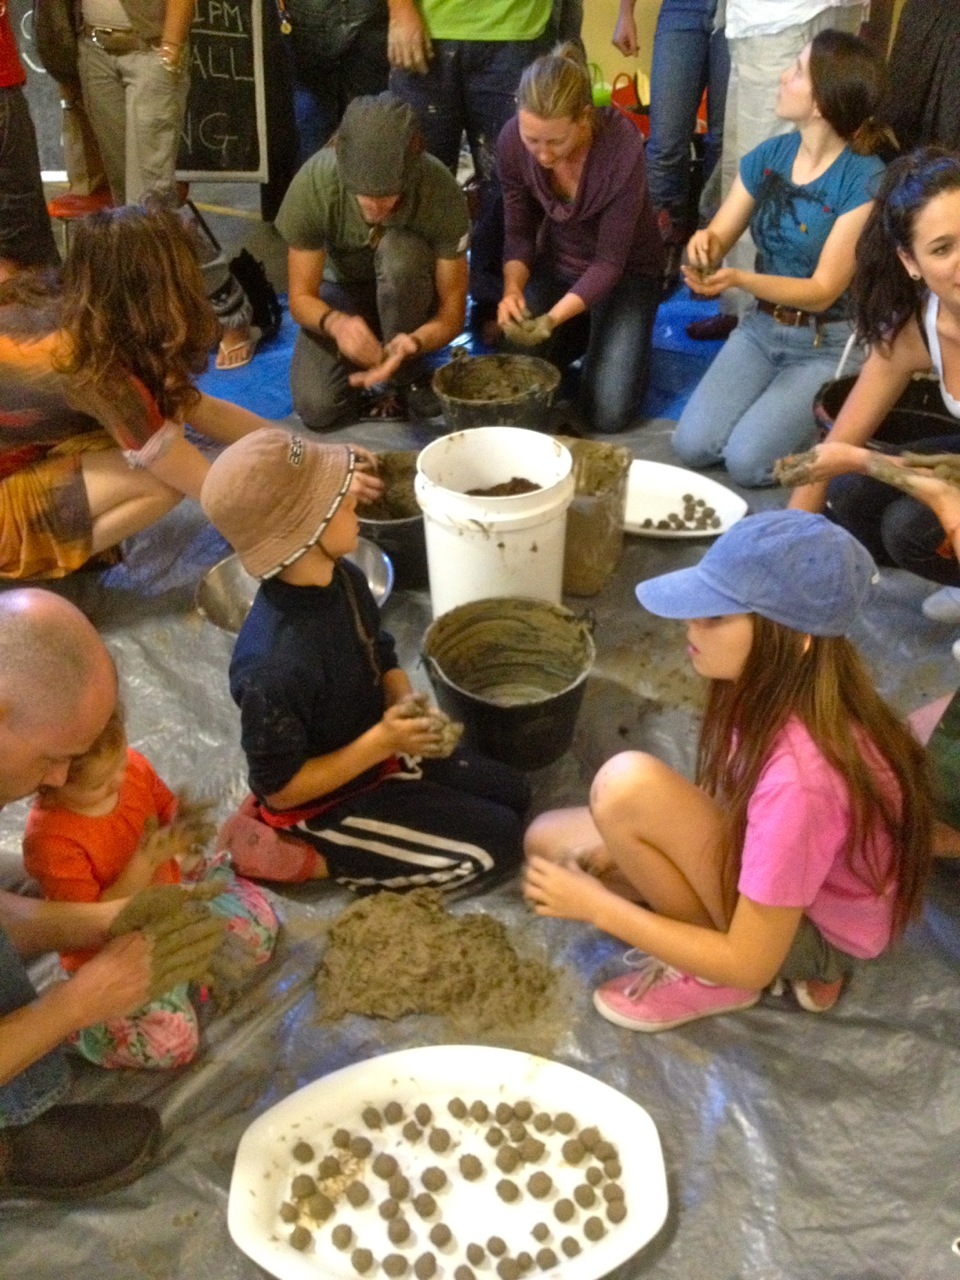 Making seedballs at our Seed Circus event a while back